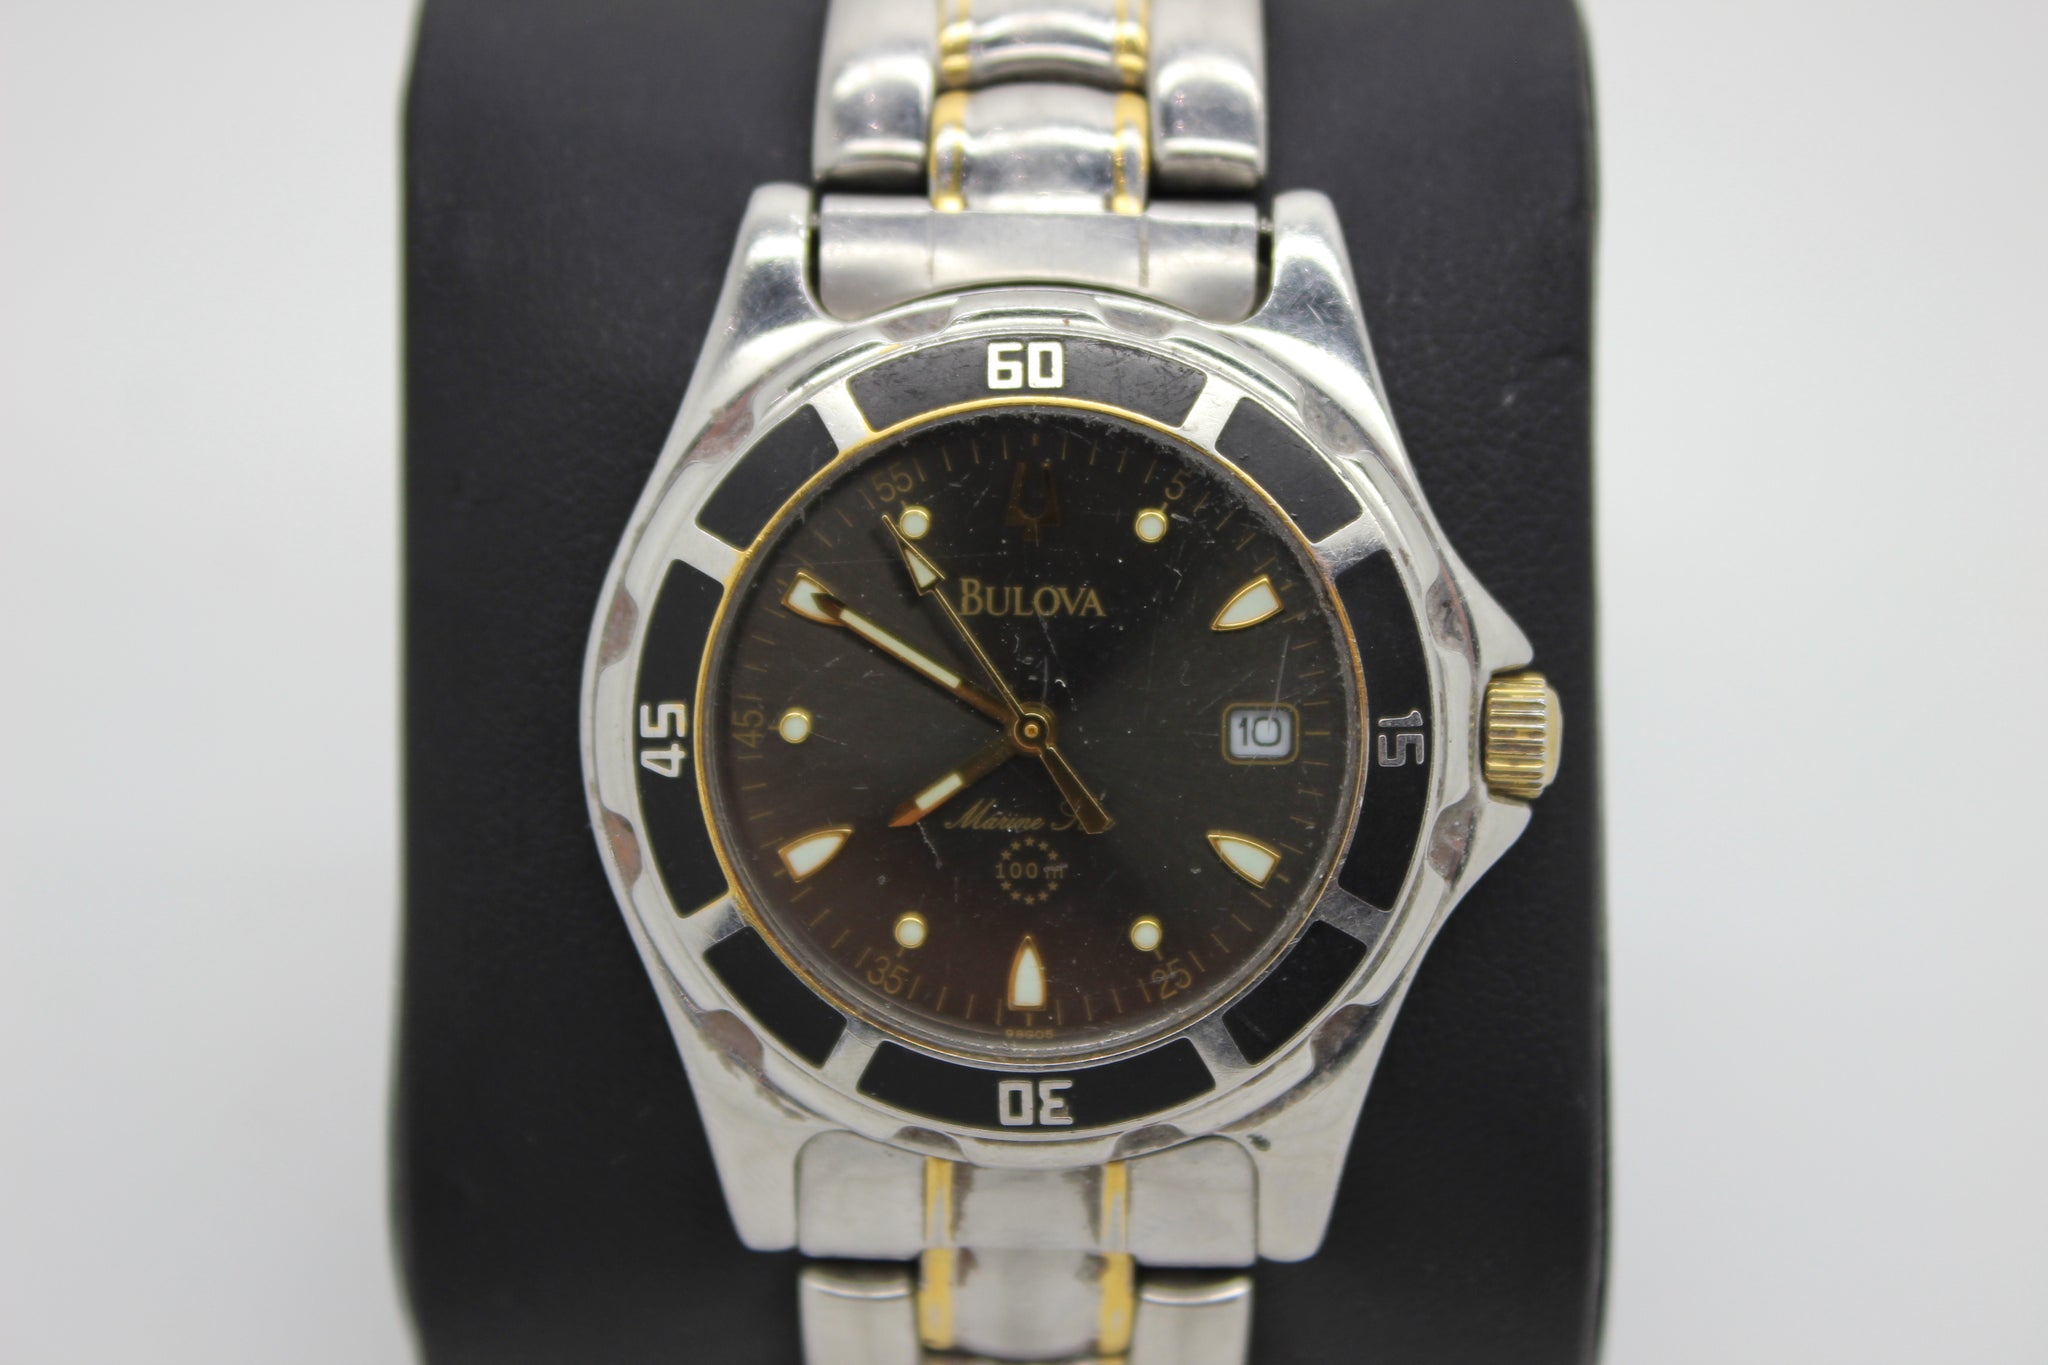 f8af69c78 Load image into Gallery viewer, Bulova Marine Star Chronograph Stainless  Steel Men' ...